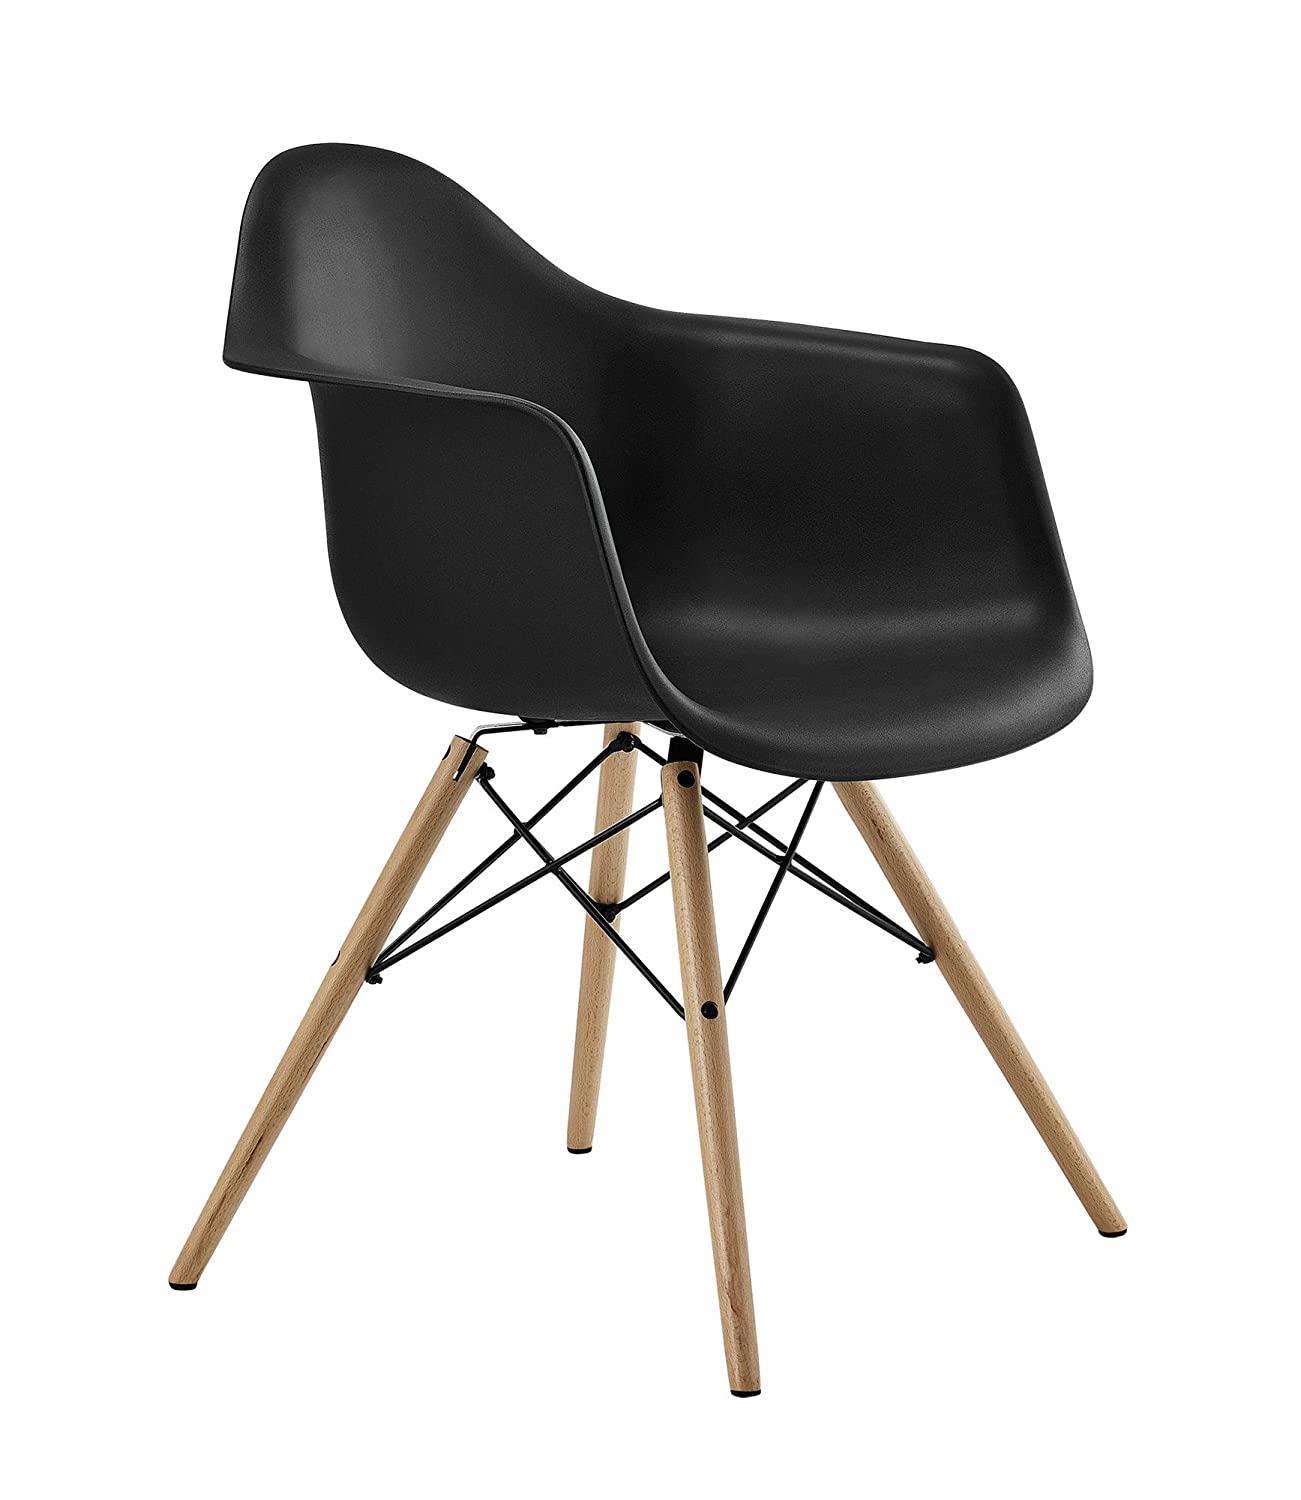 Amazon com dhp mid century modern chair with molded arms and wood legs black chairs